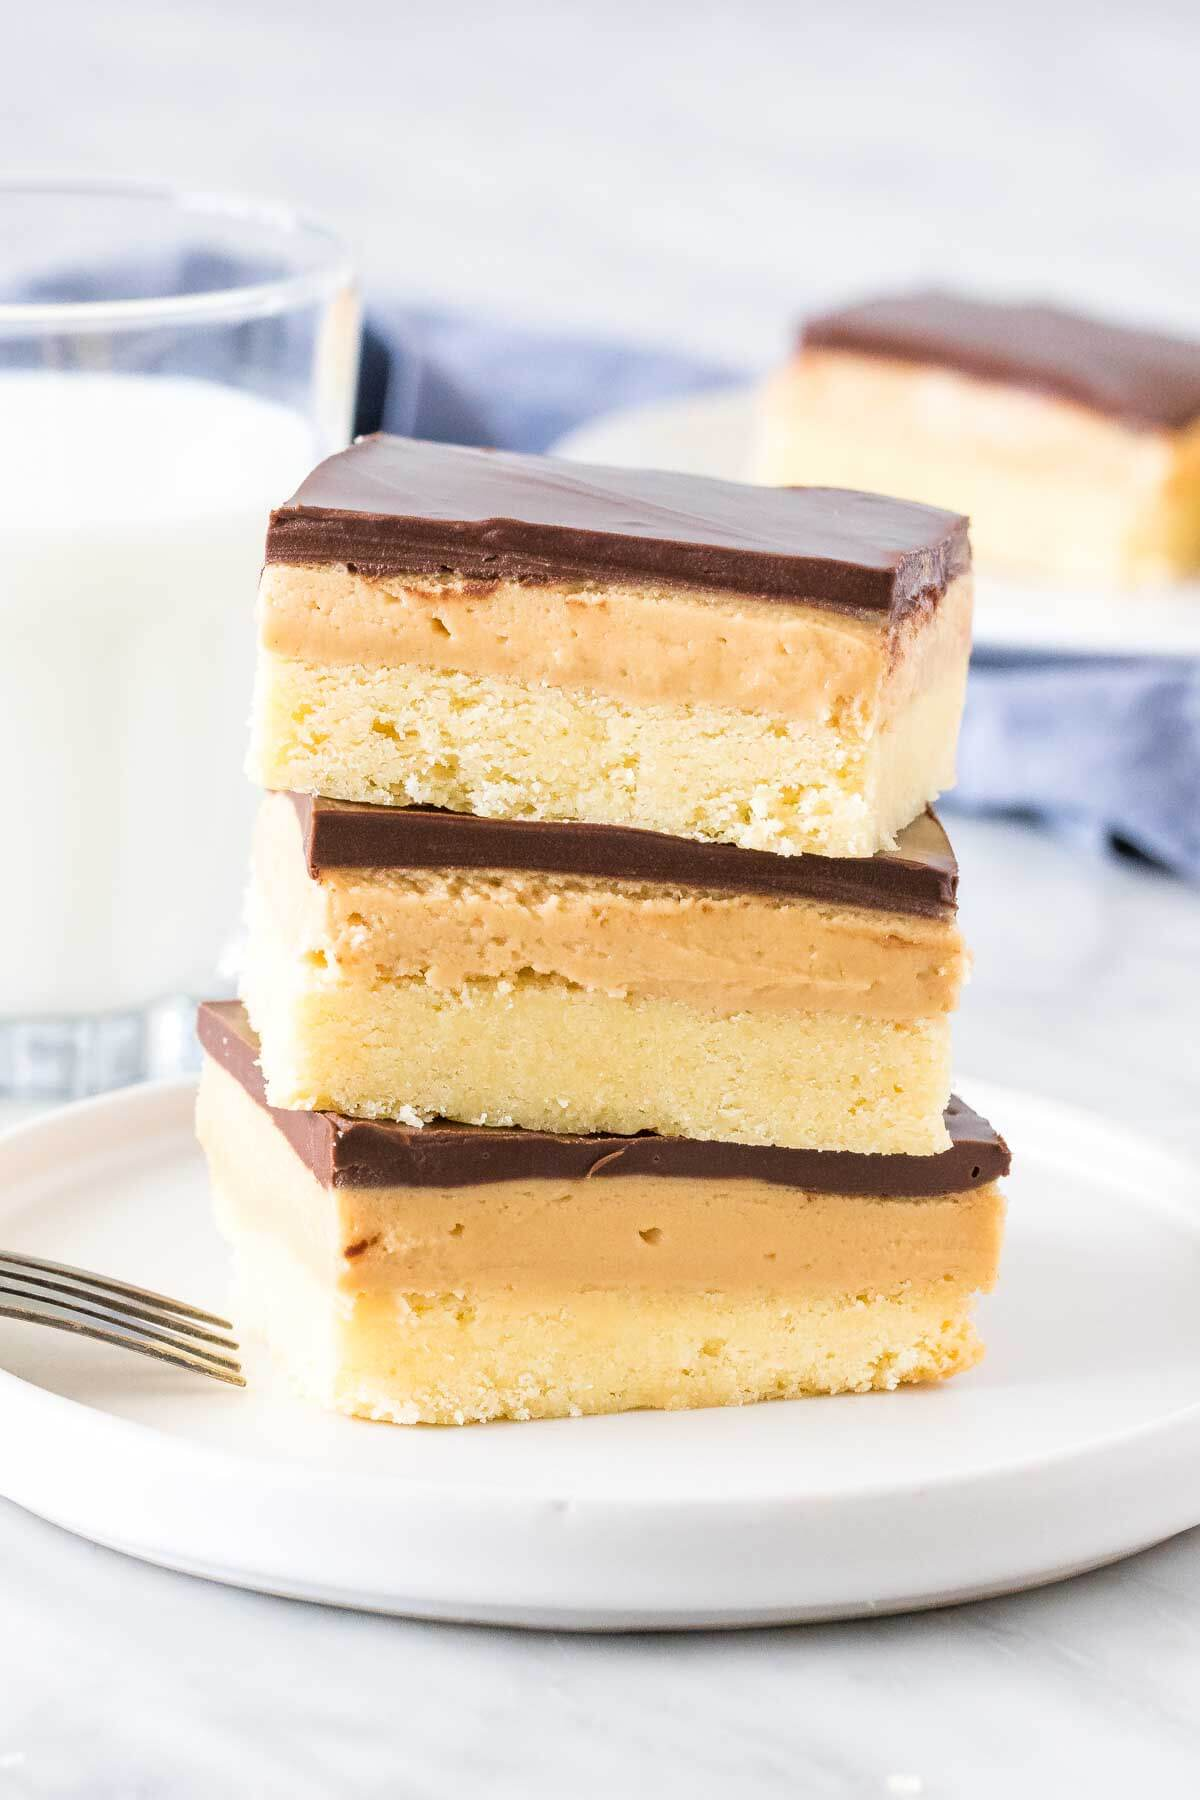 Stack of 3 peanut butter shortbread bars with a glass of milk.